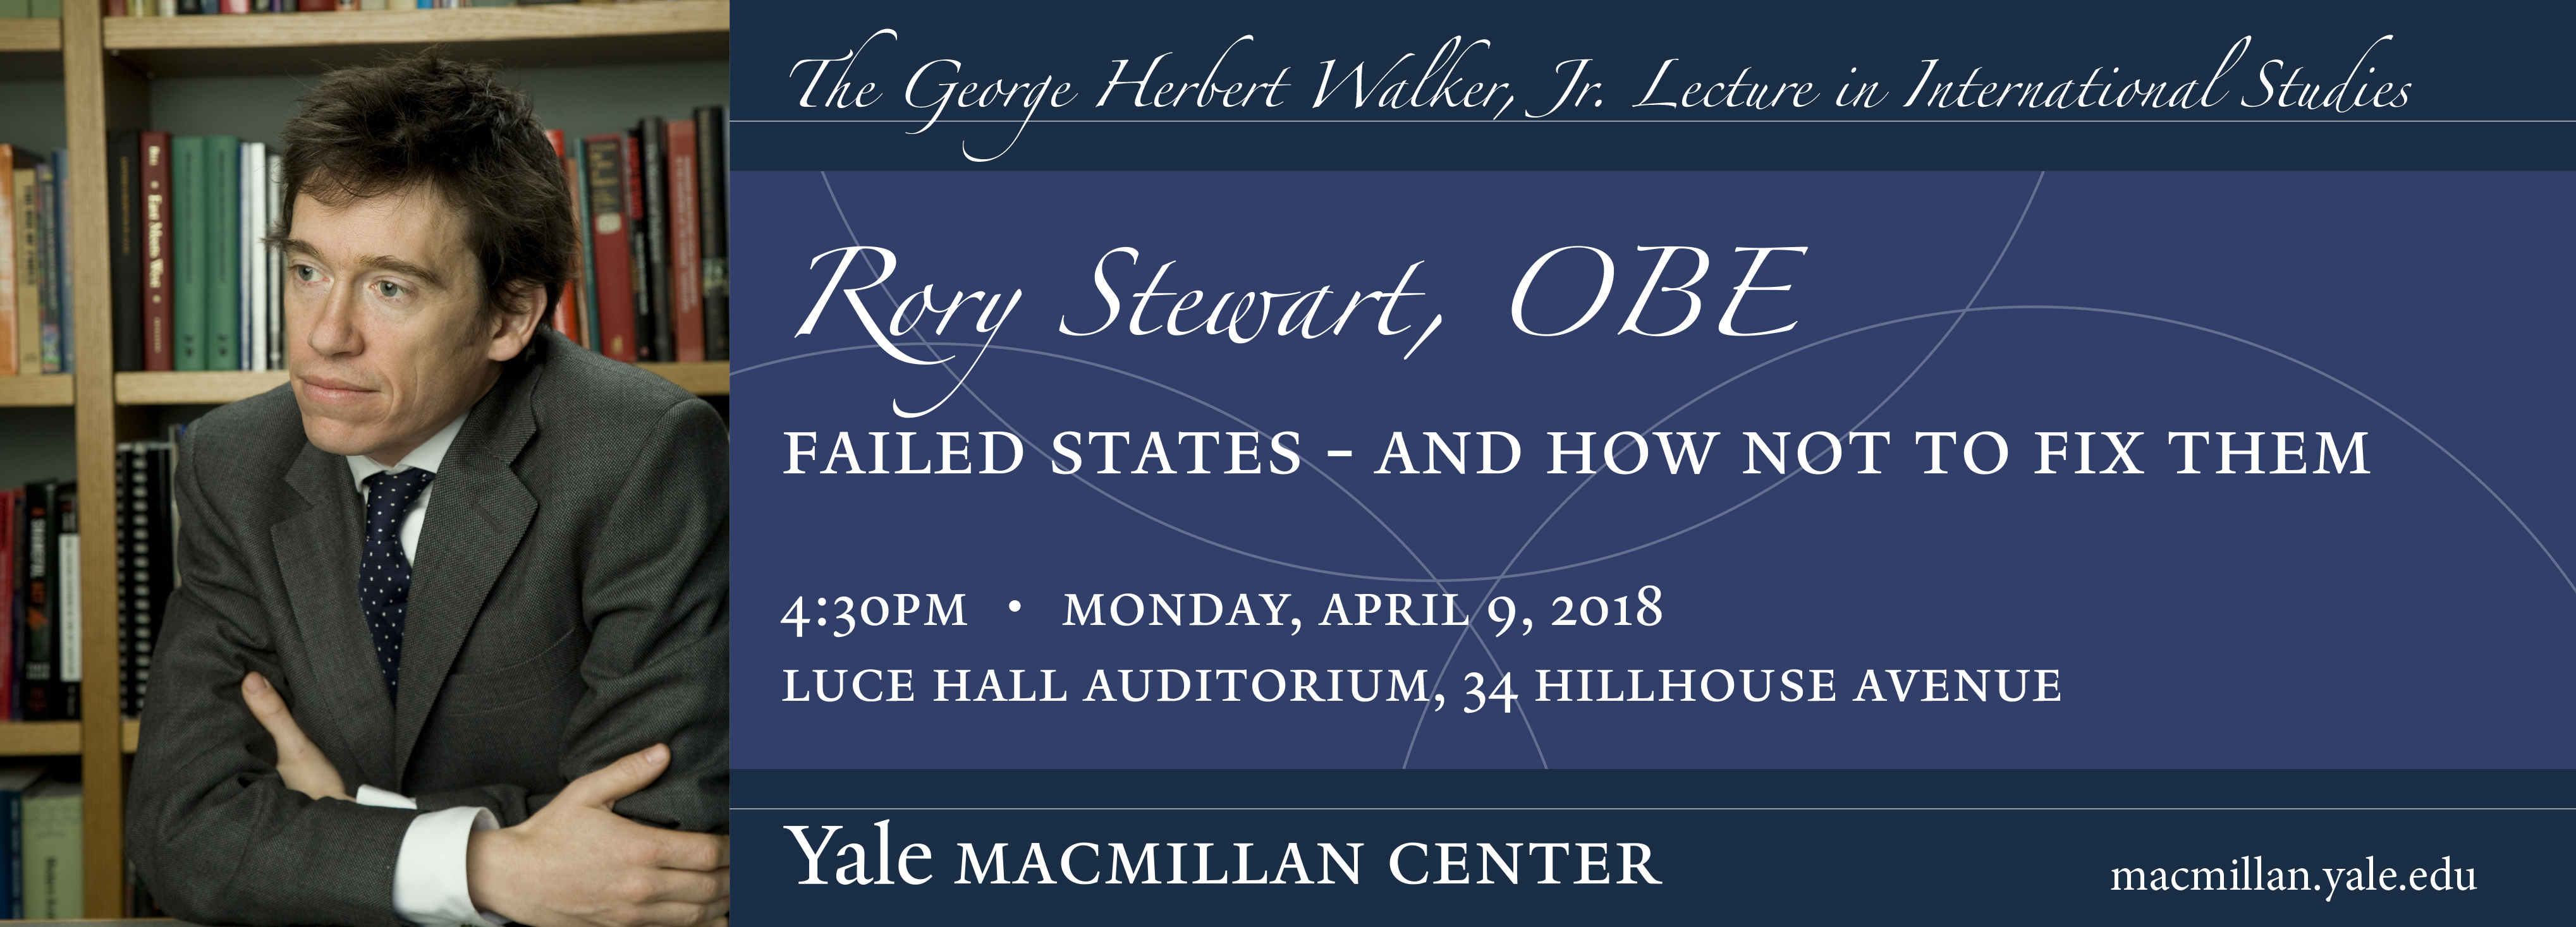 Rory Stewart, OBE, Failed States and How Not to Fix Them - Monday April 8, 2018 4:30 PM Luce Hall Auditorium 34 Hillhouse Avenue